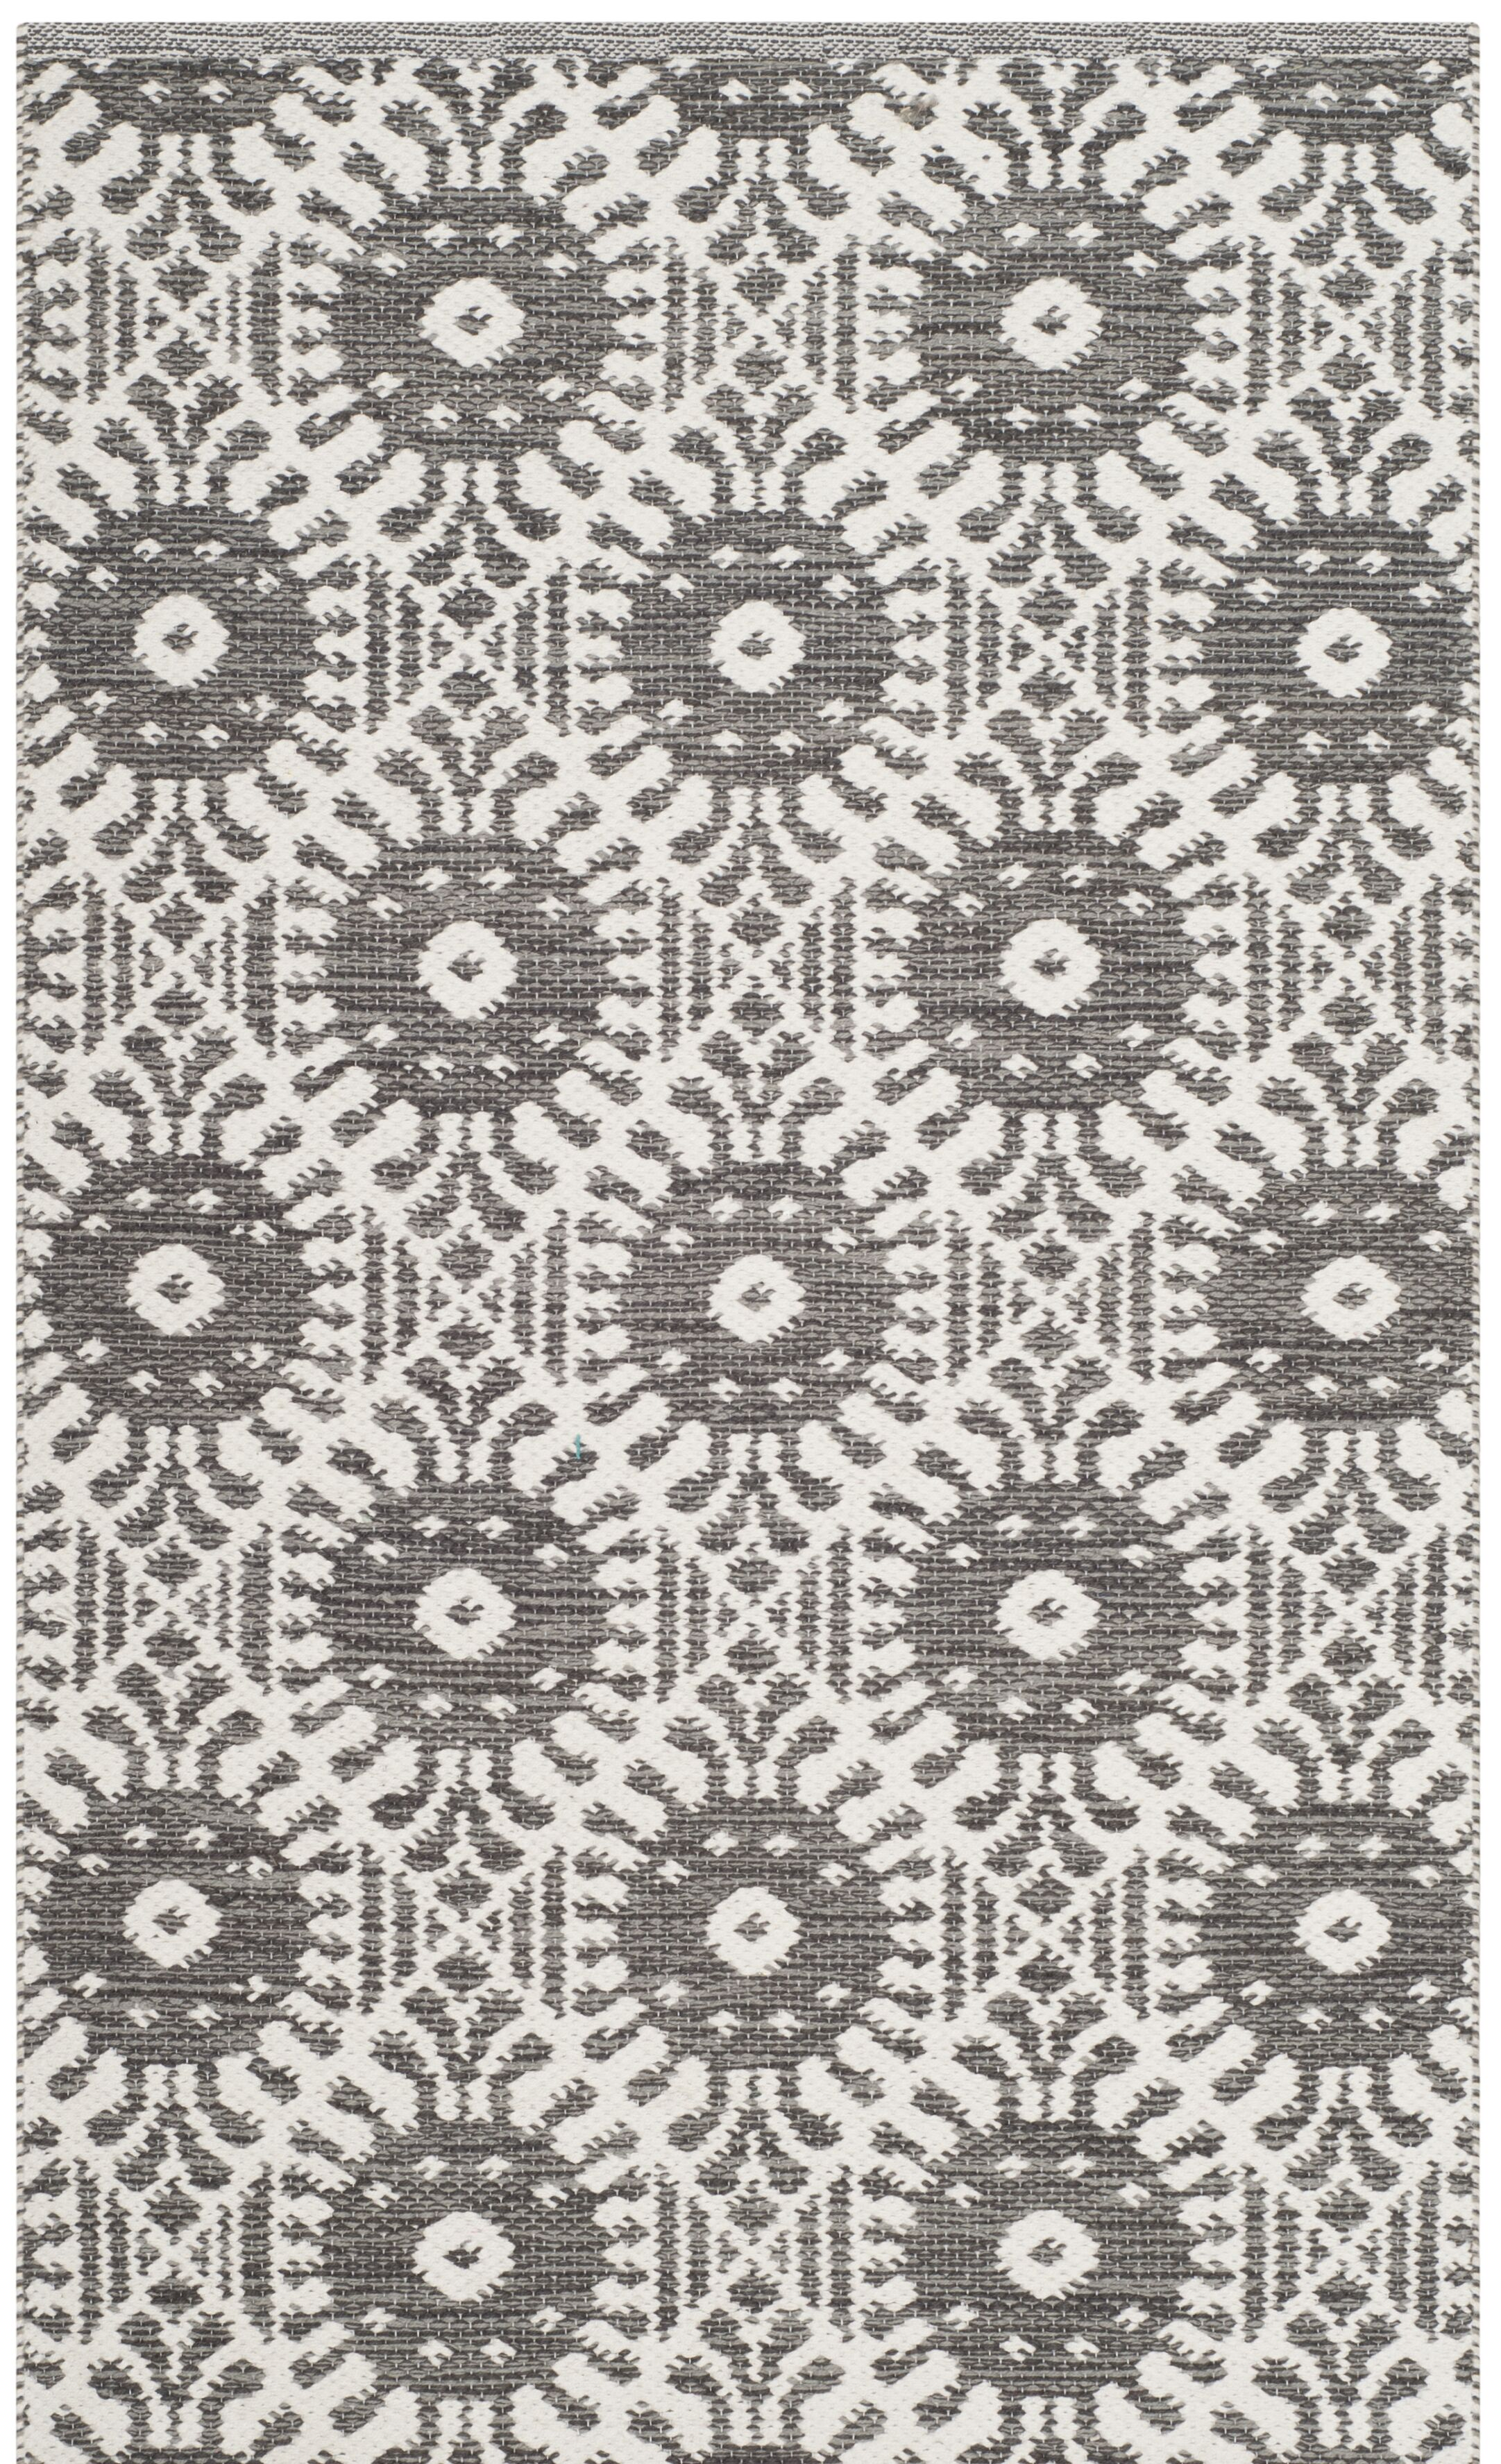 Clemence Hand-Woven Charcoal/Ivory Area Rug Rug Size: Rectangle 8' x 10'